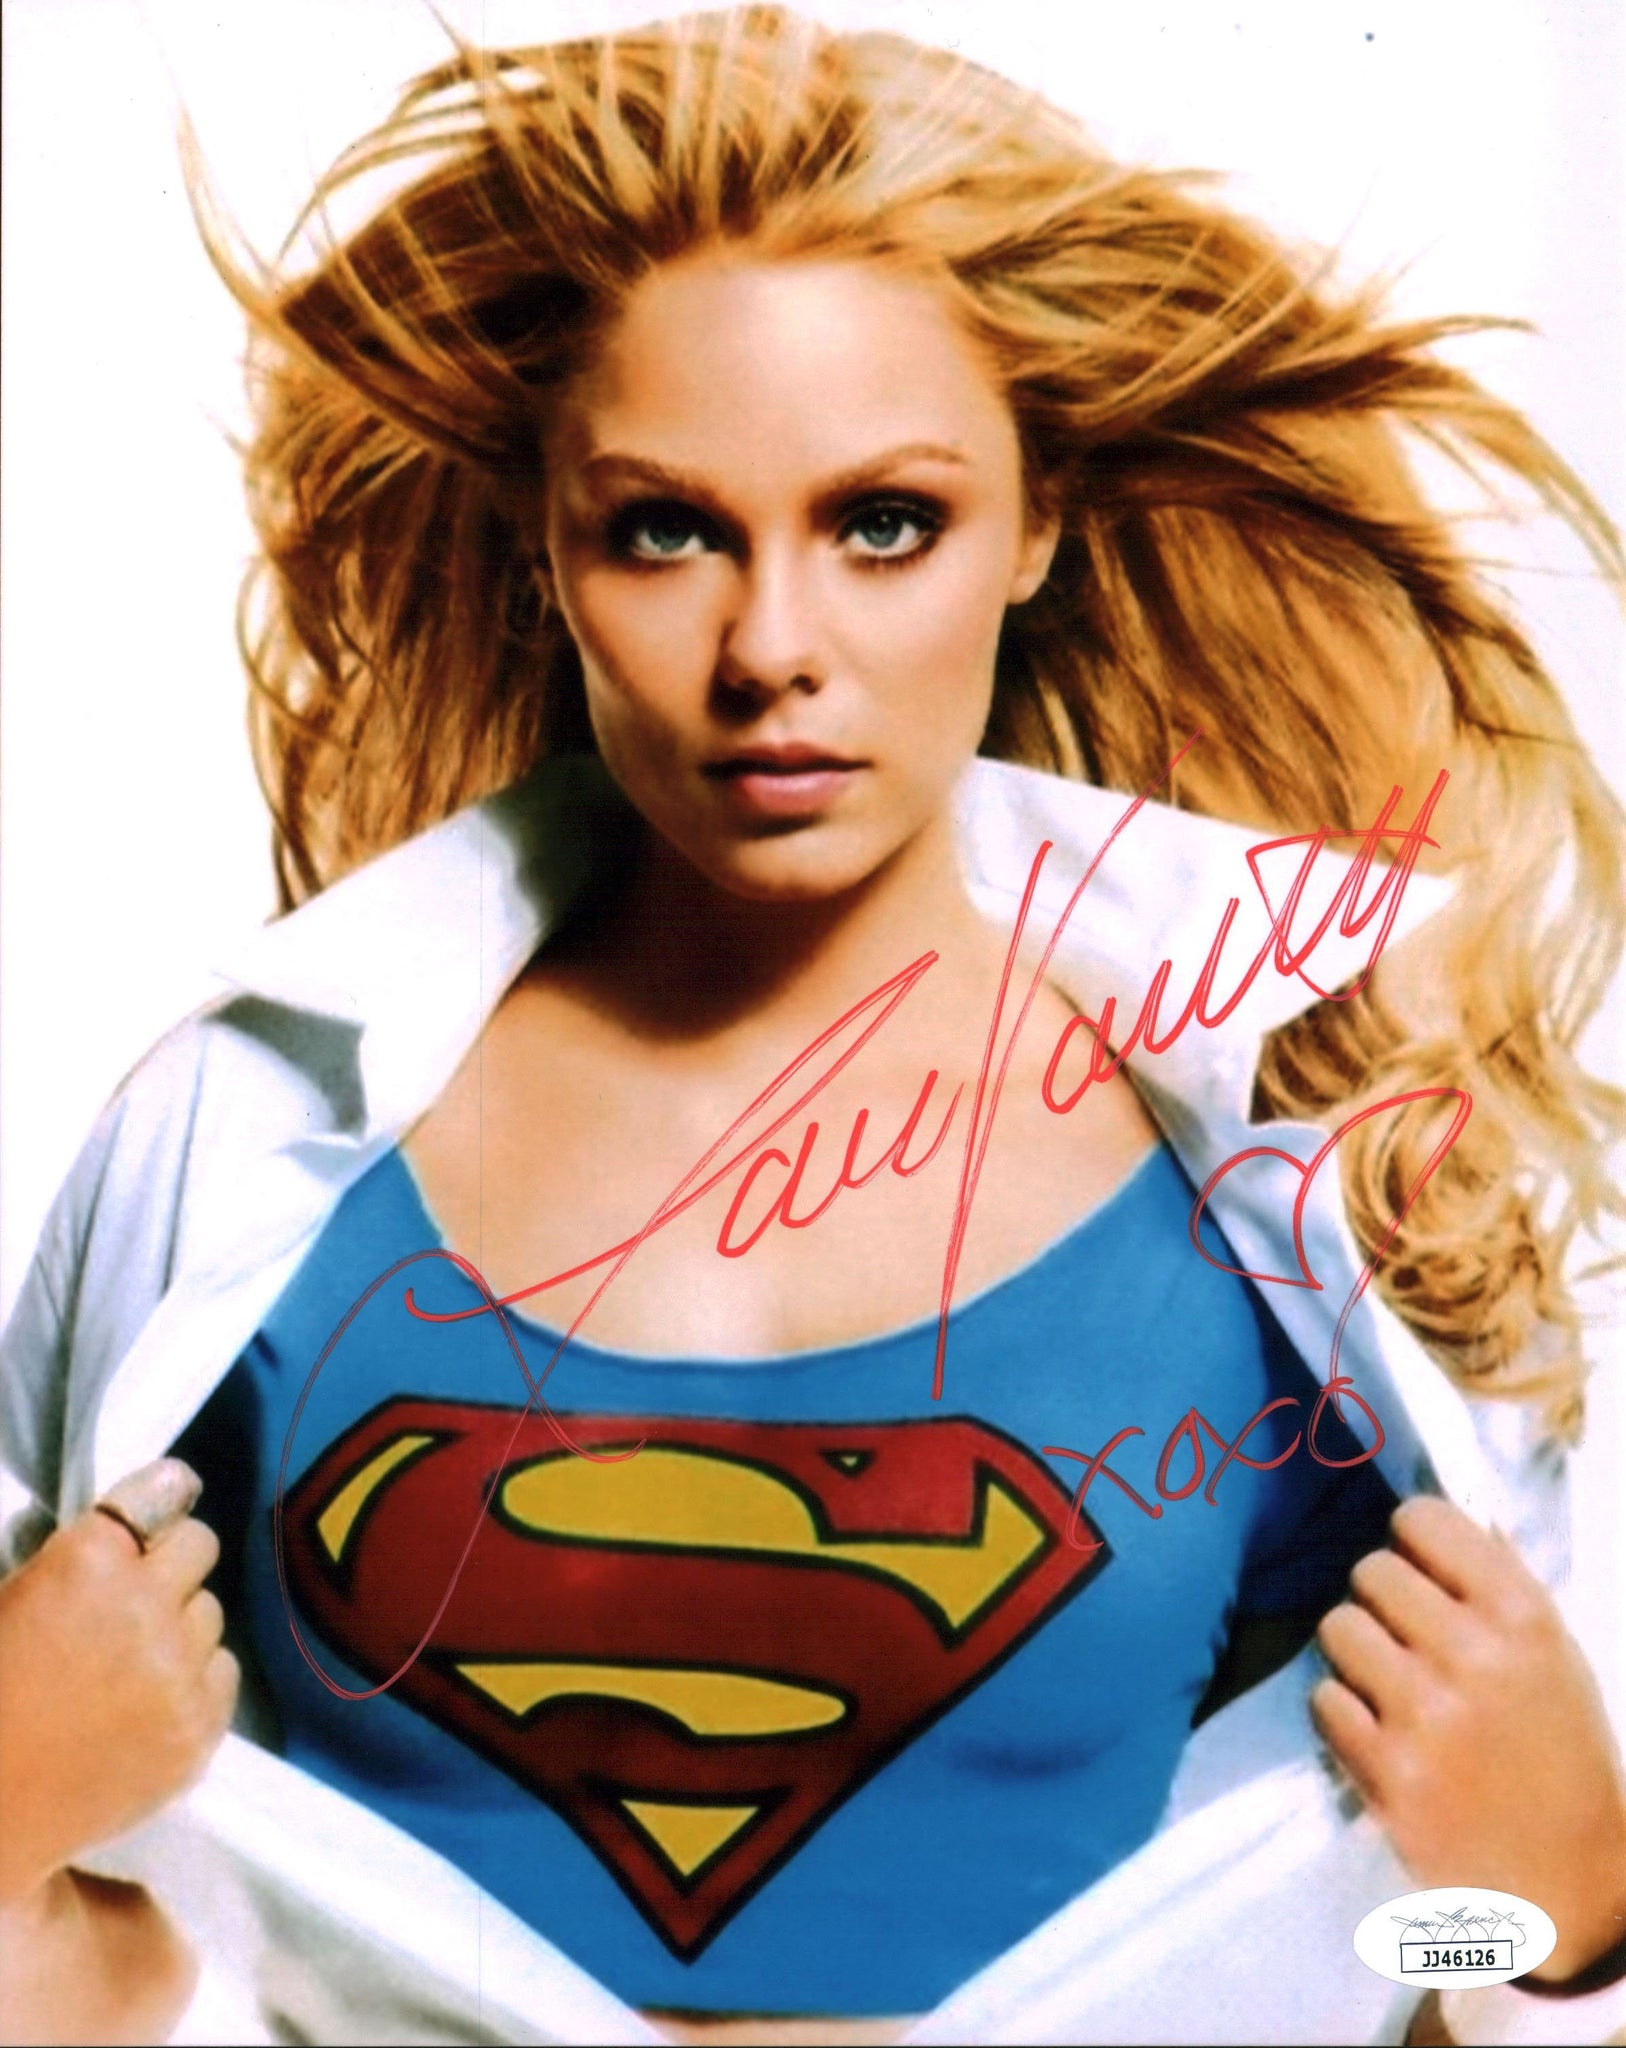 Laura Vandervoort Smallville 8x10 Photo Signed Autographed JSA Certified COA GalaxyCon